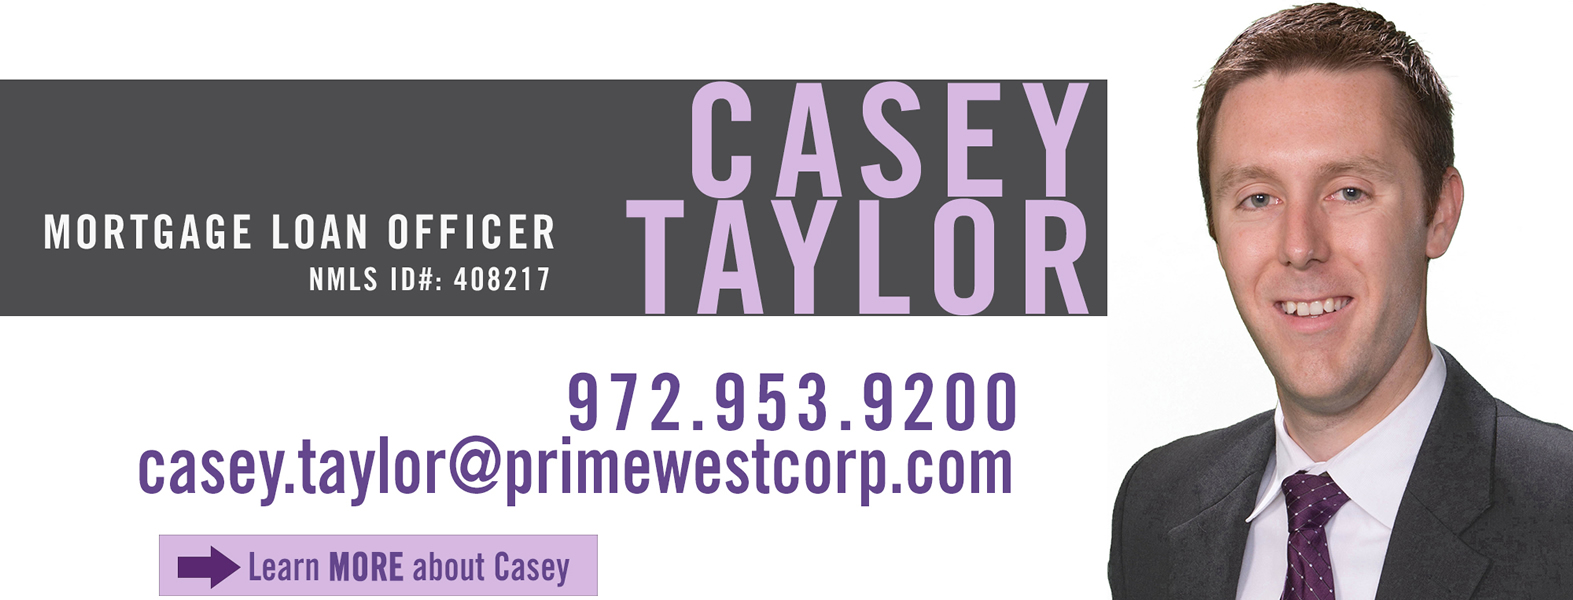 Casey Taylor, Mortgage Loan Officer, PrimeWest Mortgage